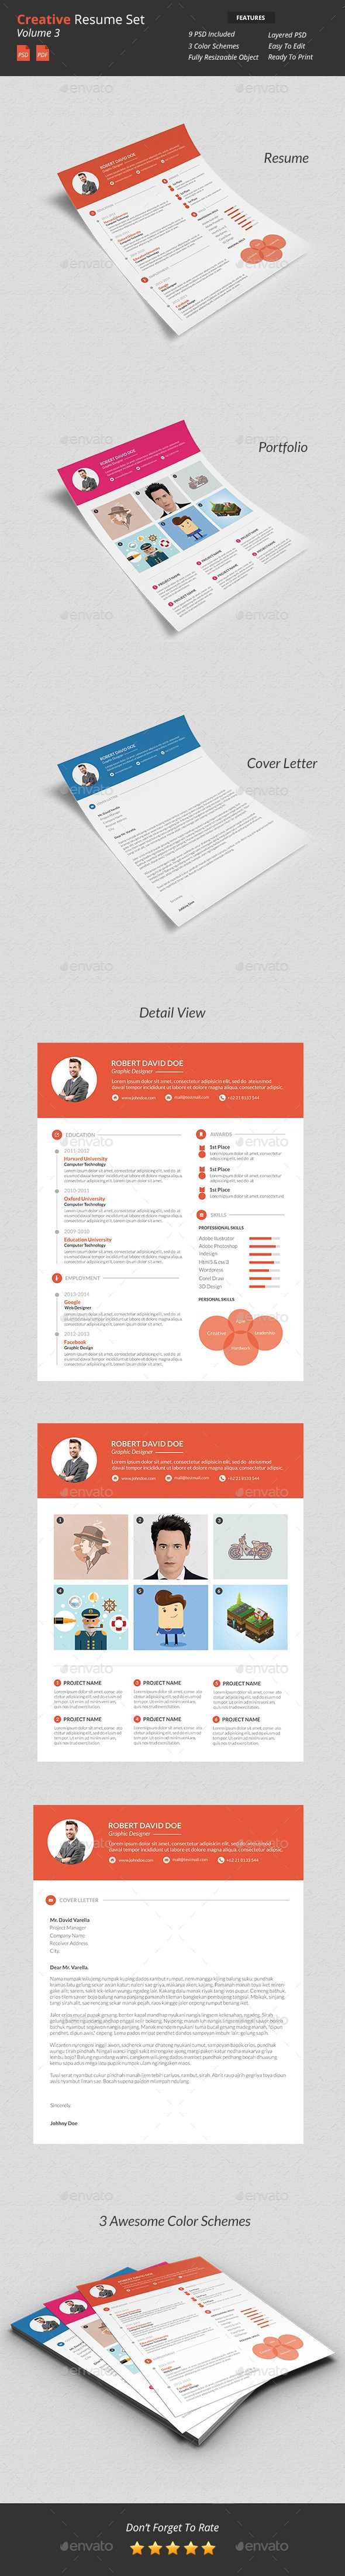 Creative Resume Set v3